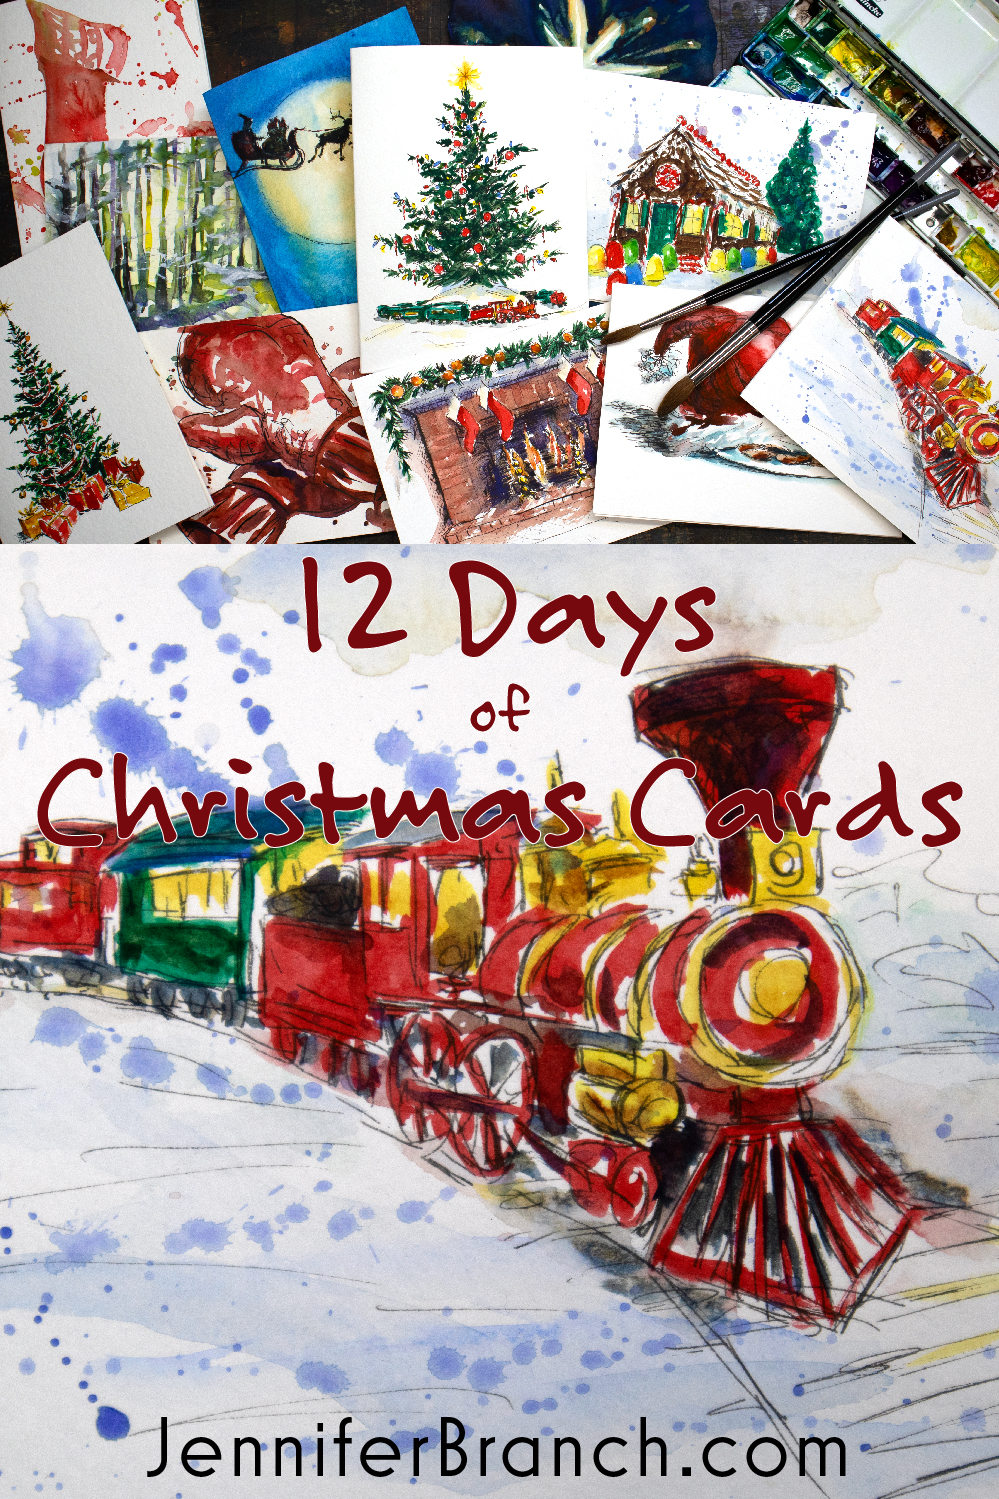 Paint beautiful Christmas cards for your family and friends! In the introduction, I show you all the materials you need to watercolor paint a train card.